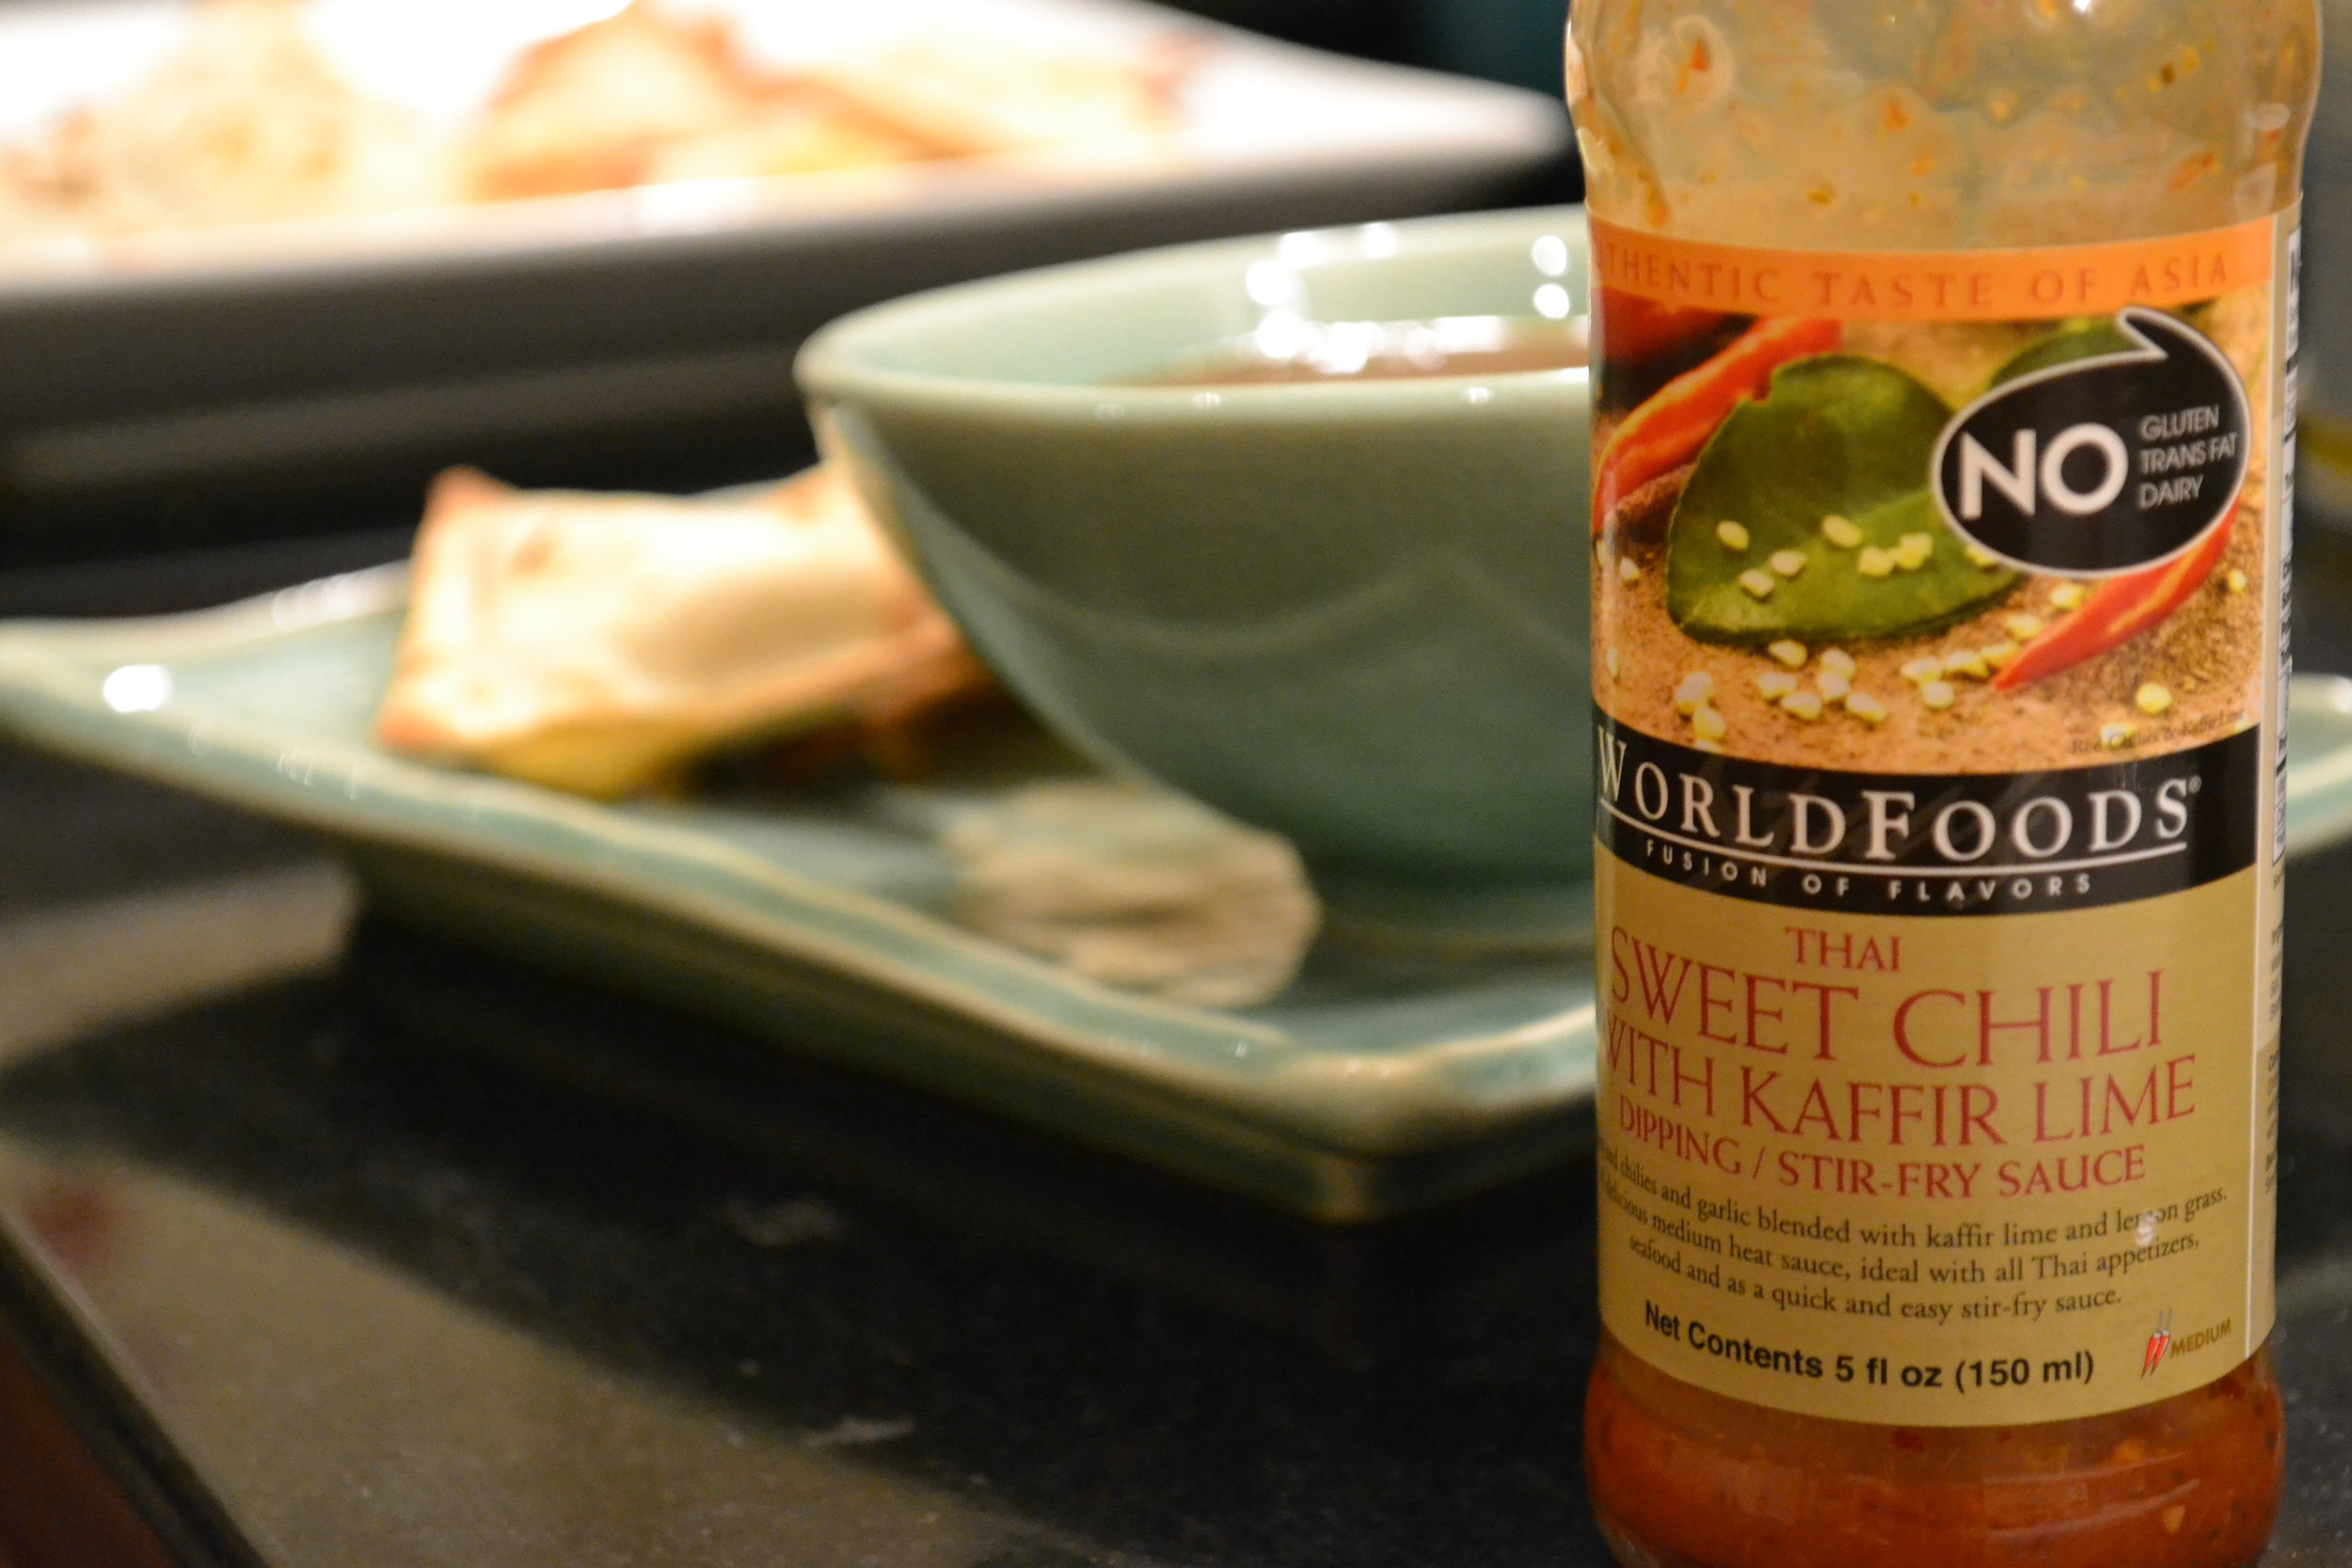 WorldFoods Sweet Chili Lime Dipping Sauce